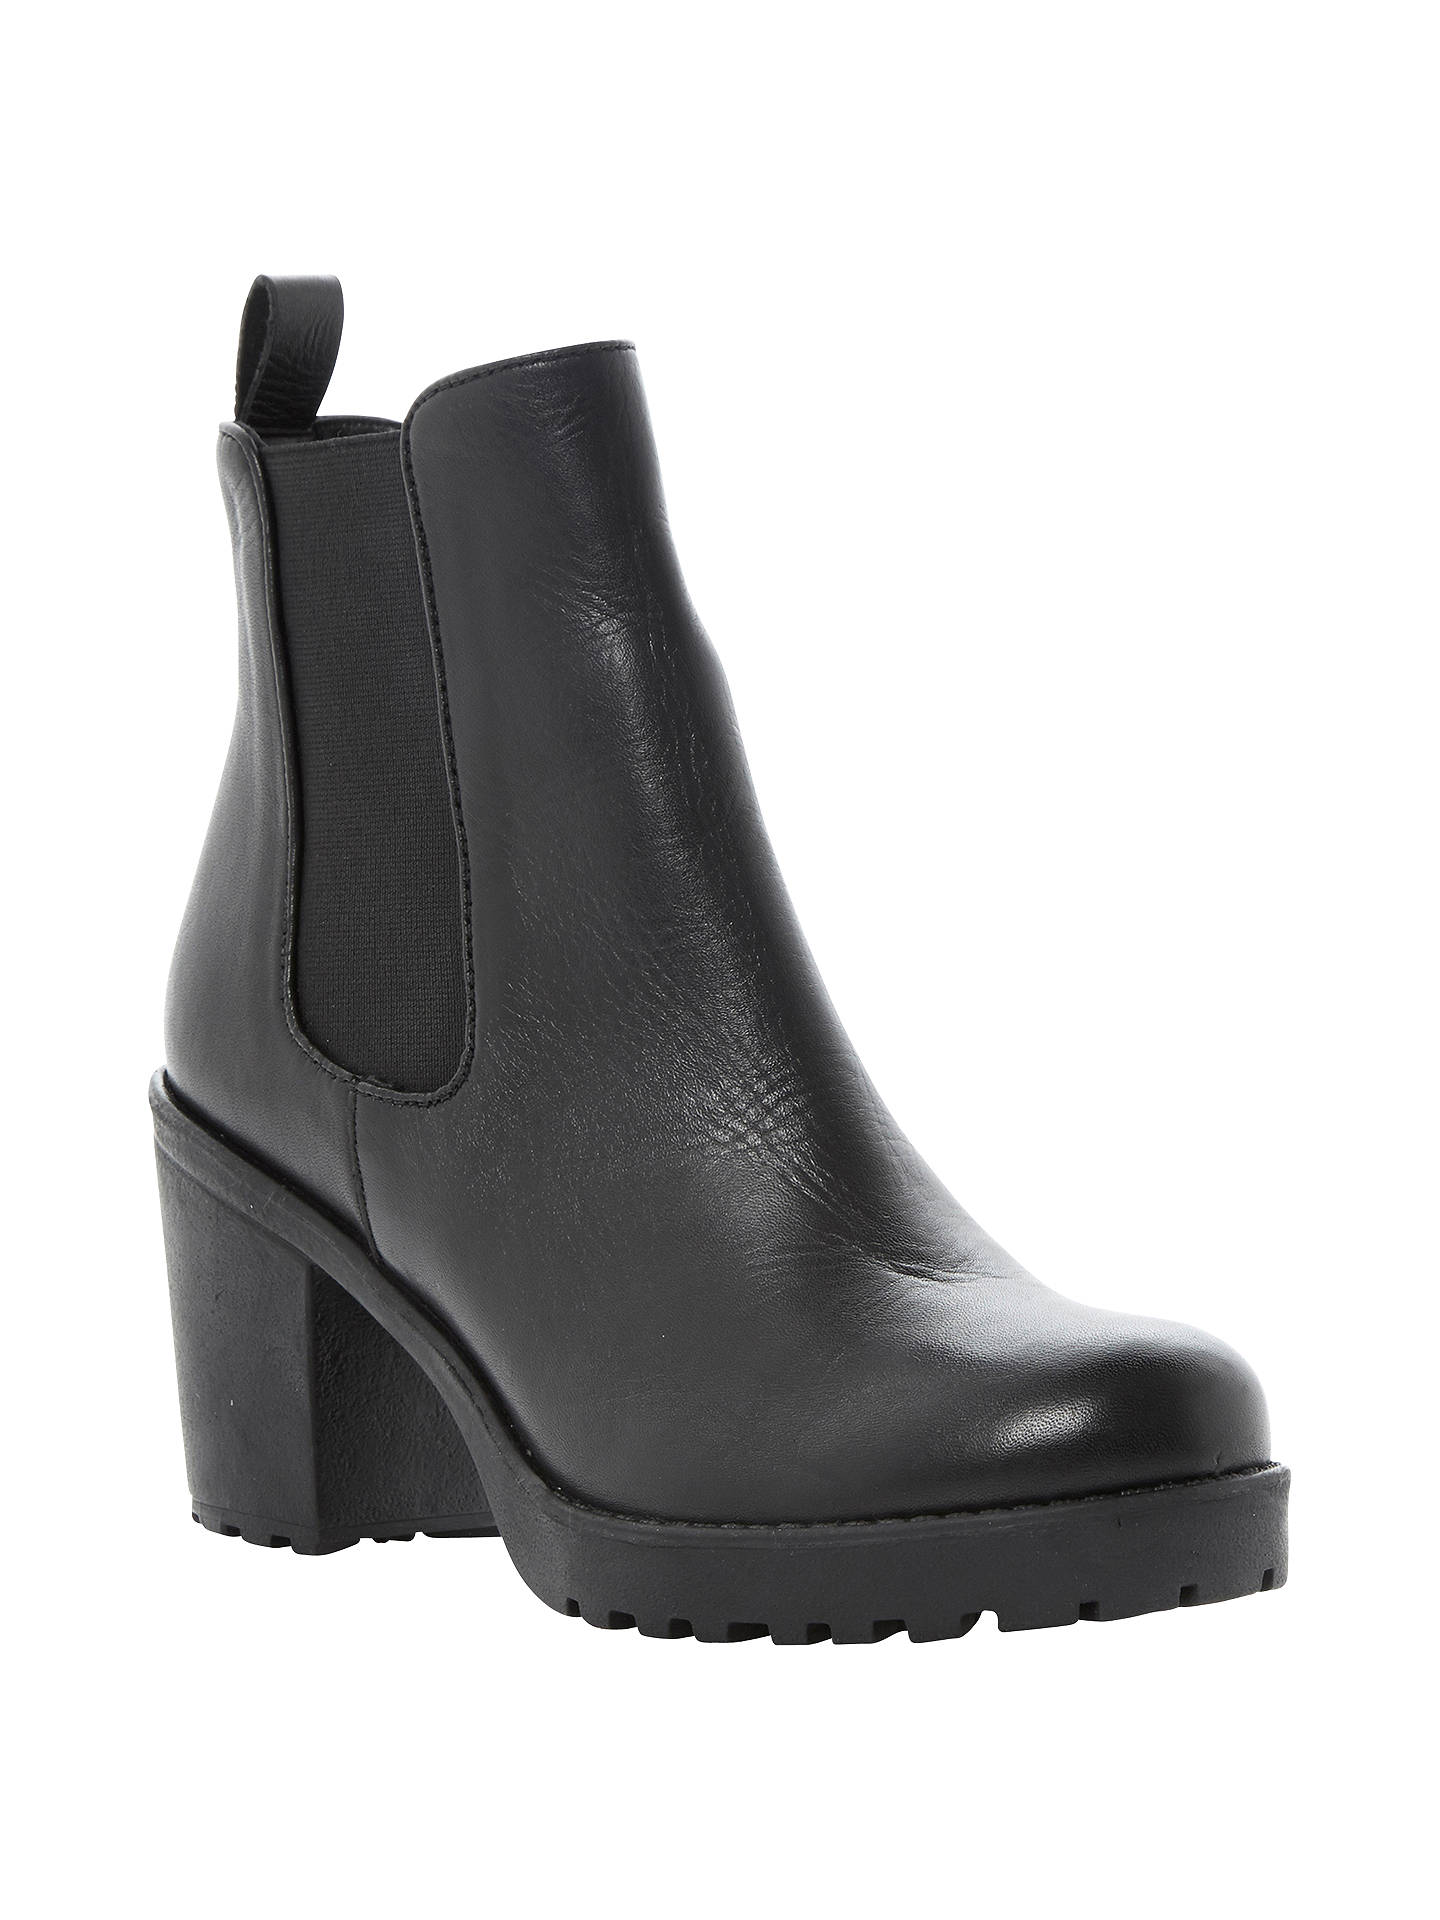 e3ba0c1864c Dune Pring Heeled Cleated Sole Leather Chelsea Ankle Boots at John ...